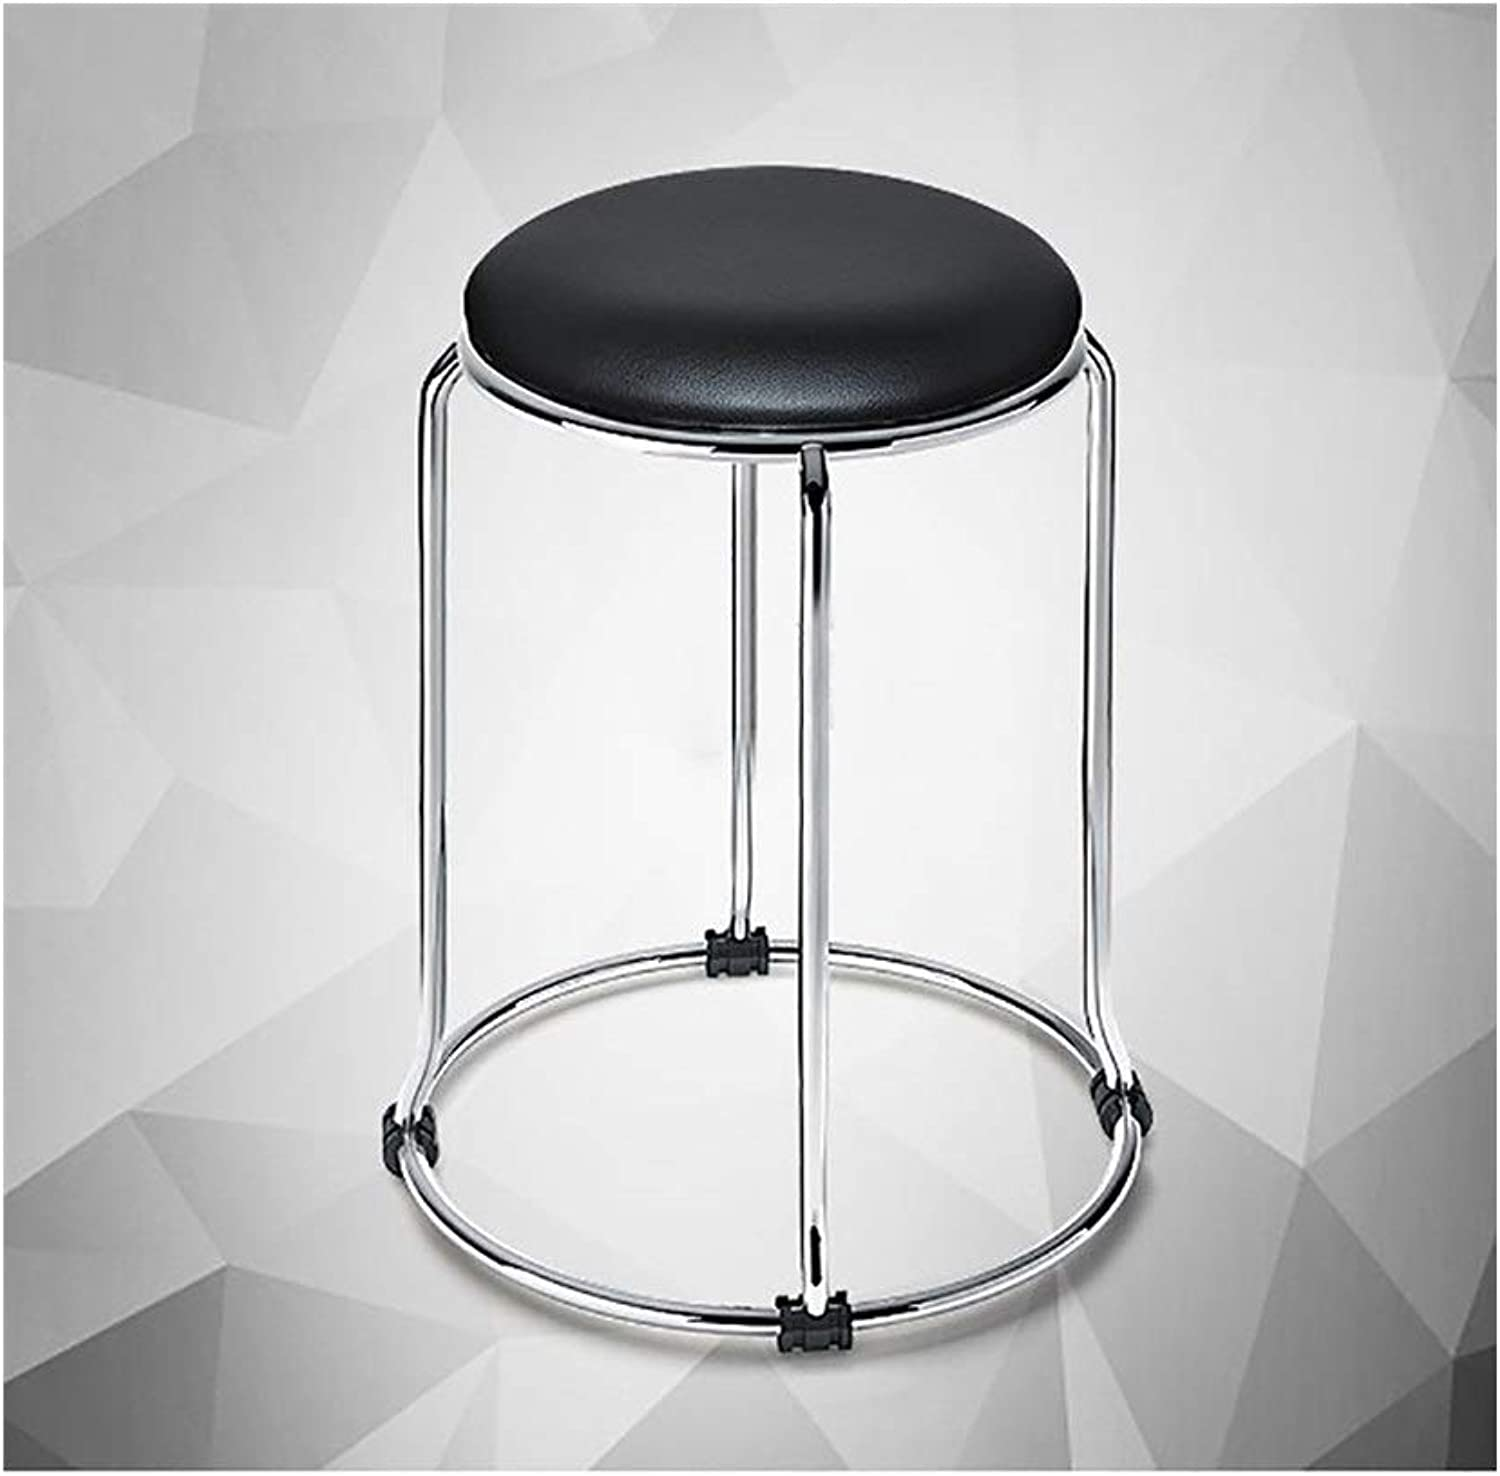 DYFYMX,Stylish Stool Fashion Simple Stool Household Metal Table Stool high Stool Wooden Stool Anti-Skid Furniture (color   D)